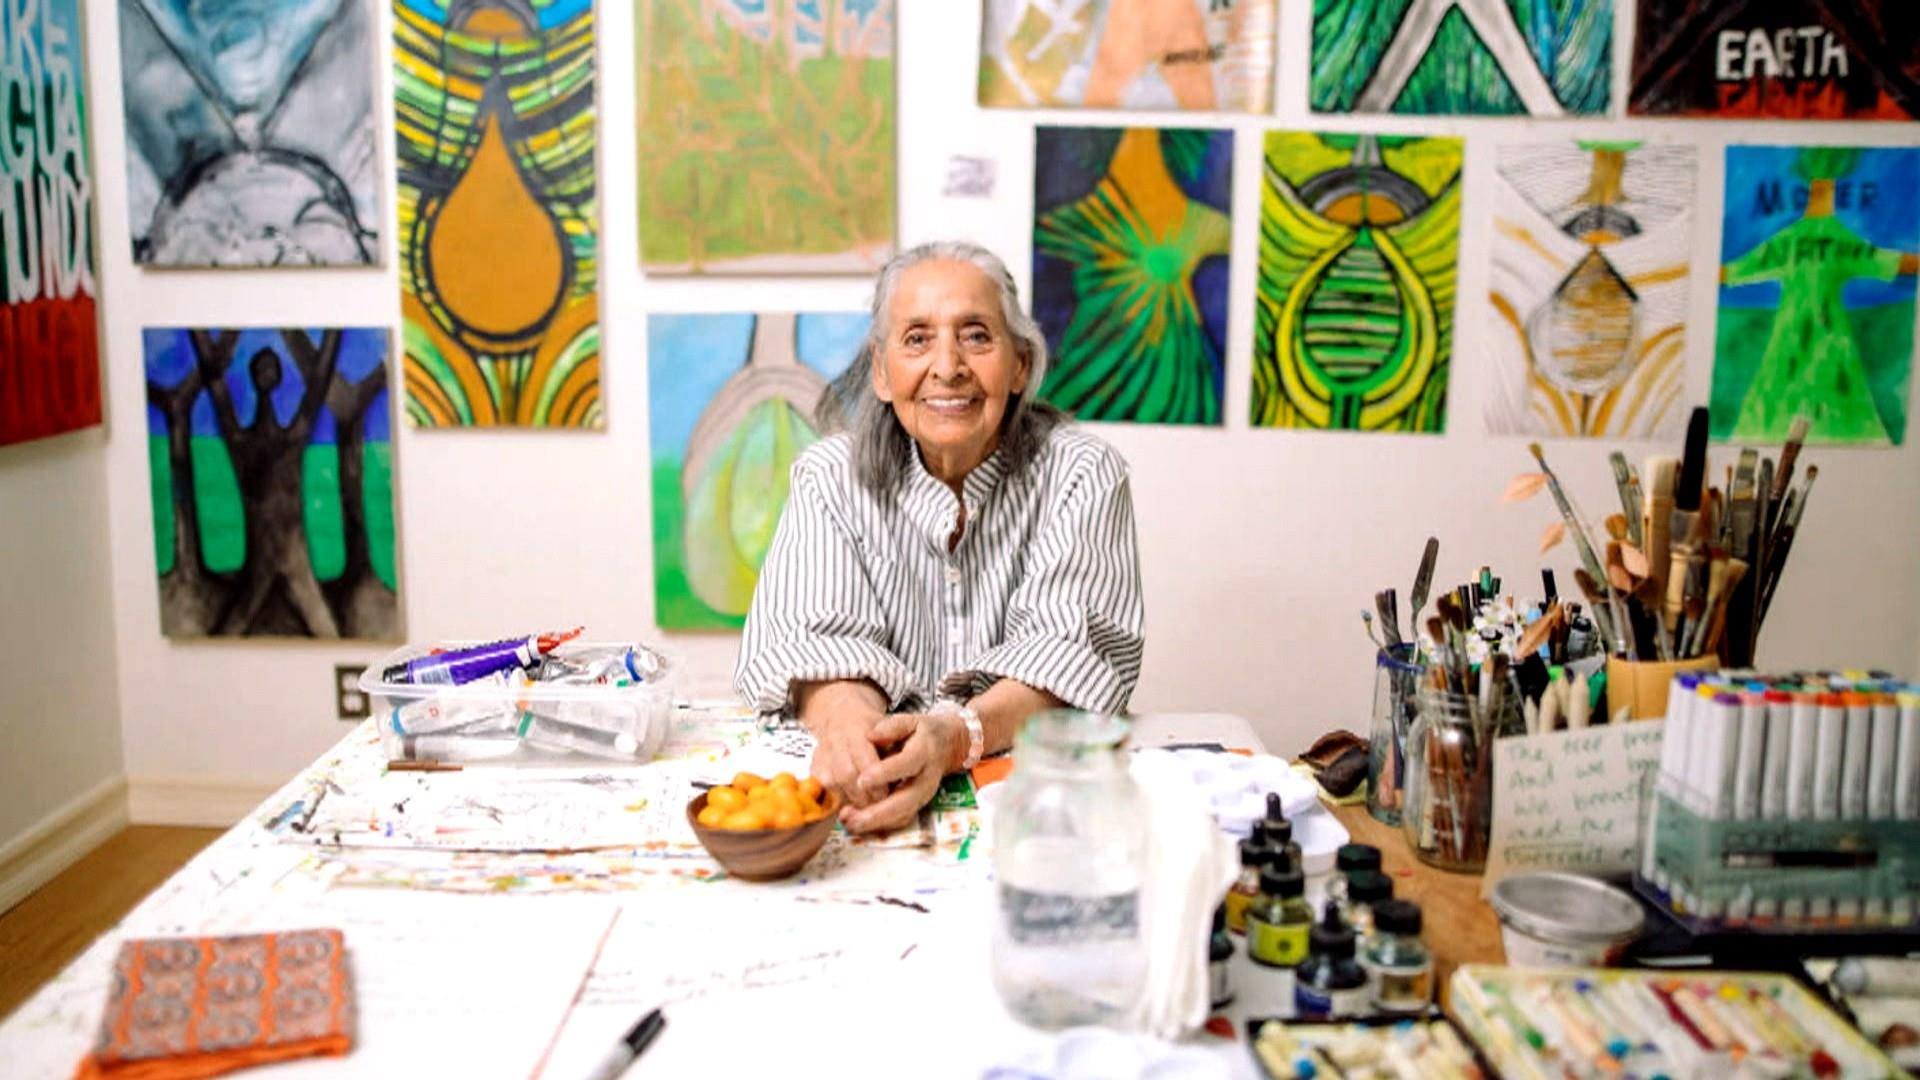 How a 99-year-old artist became an overnight success